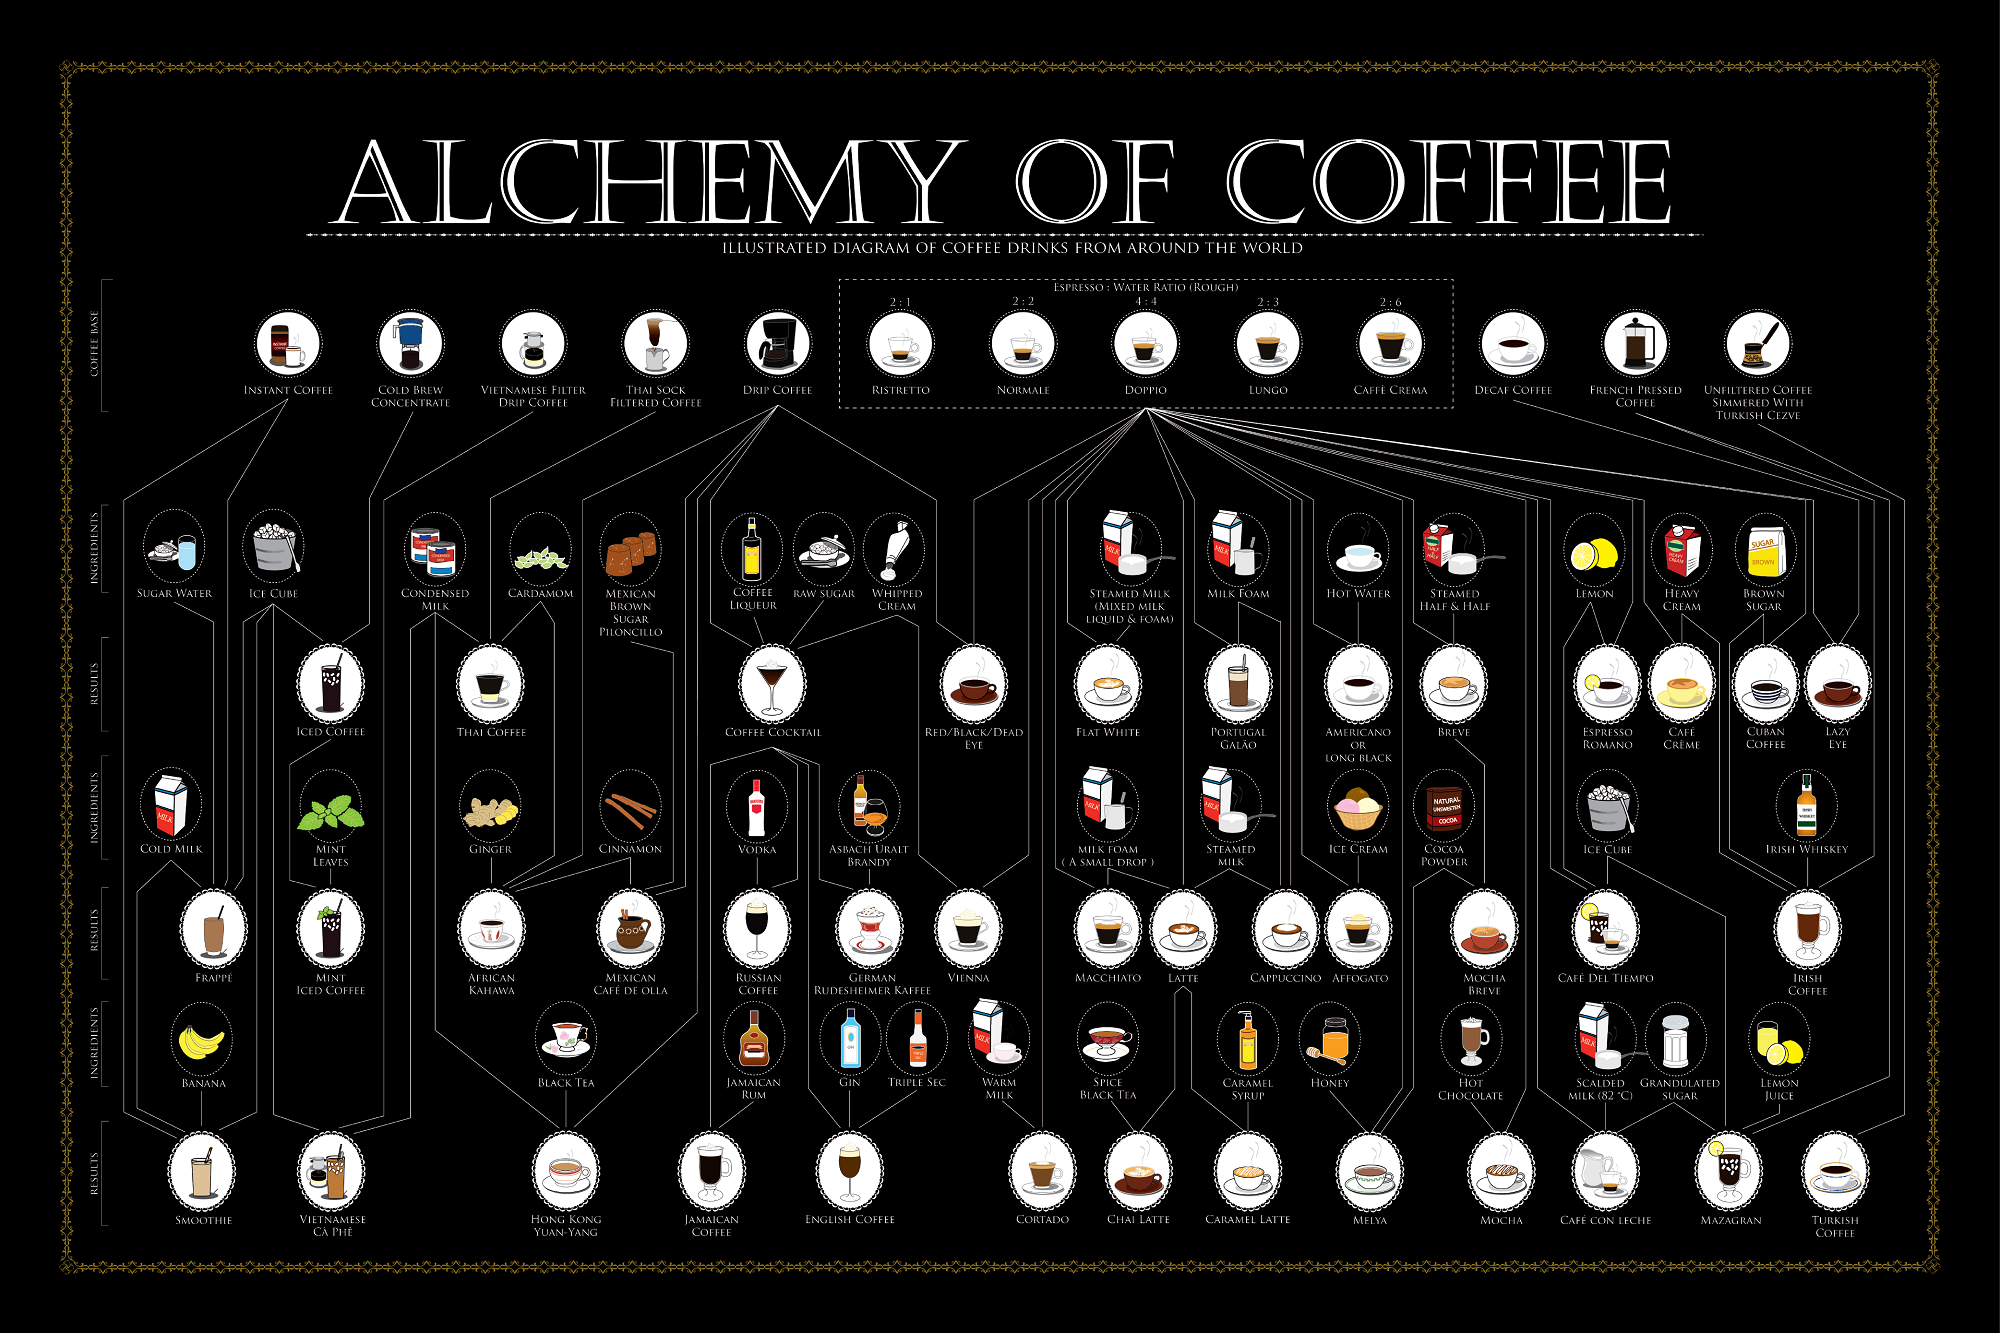 Alchemy of Coffee: 39 coffee drinks from around the world